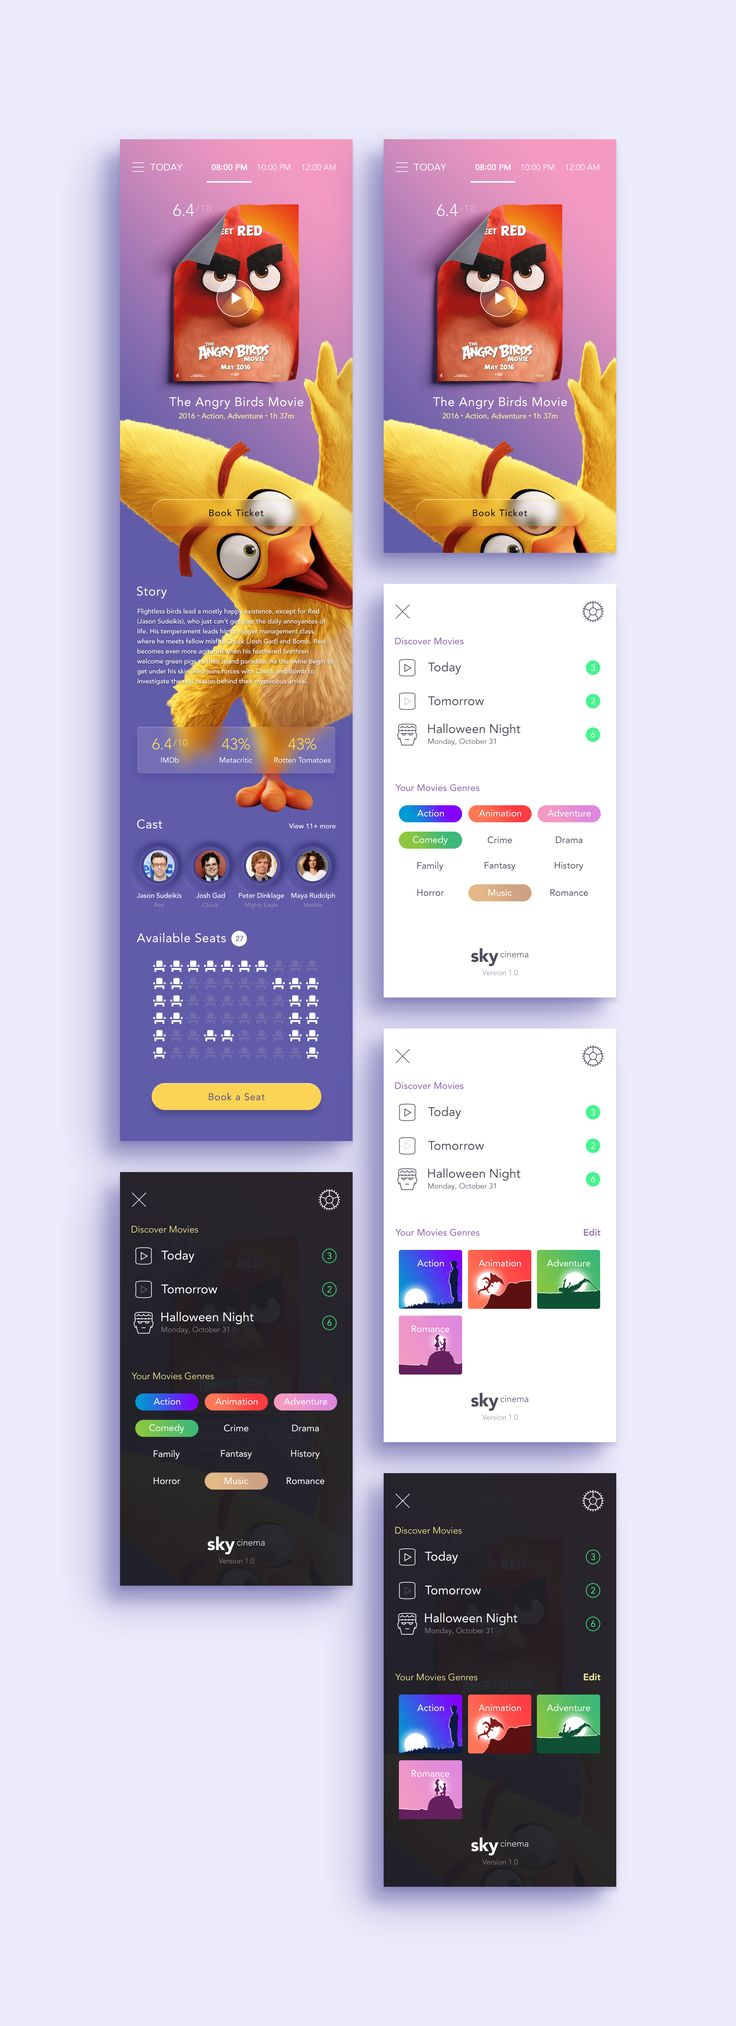 Cinema app by moatasem kharazz